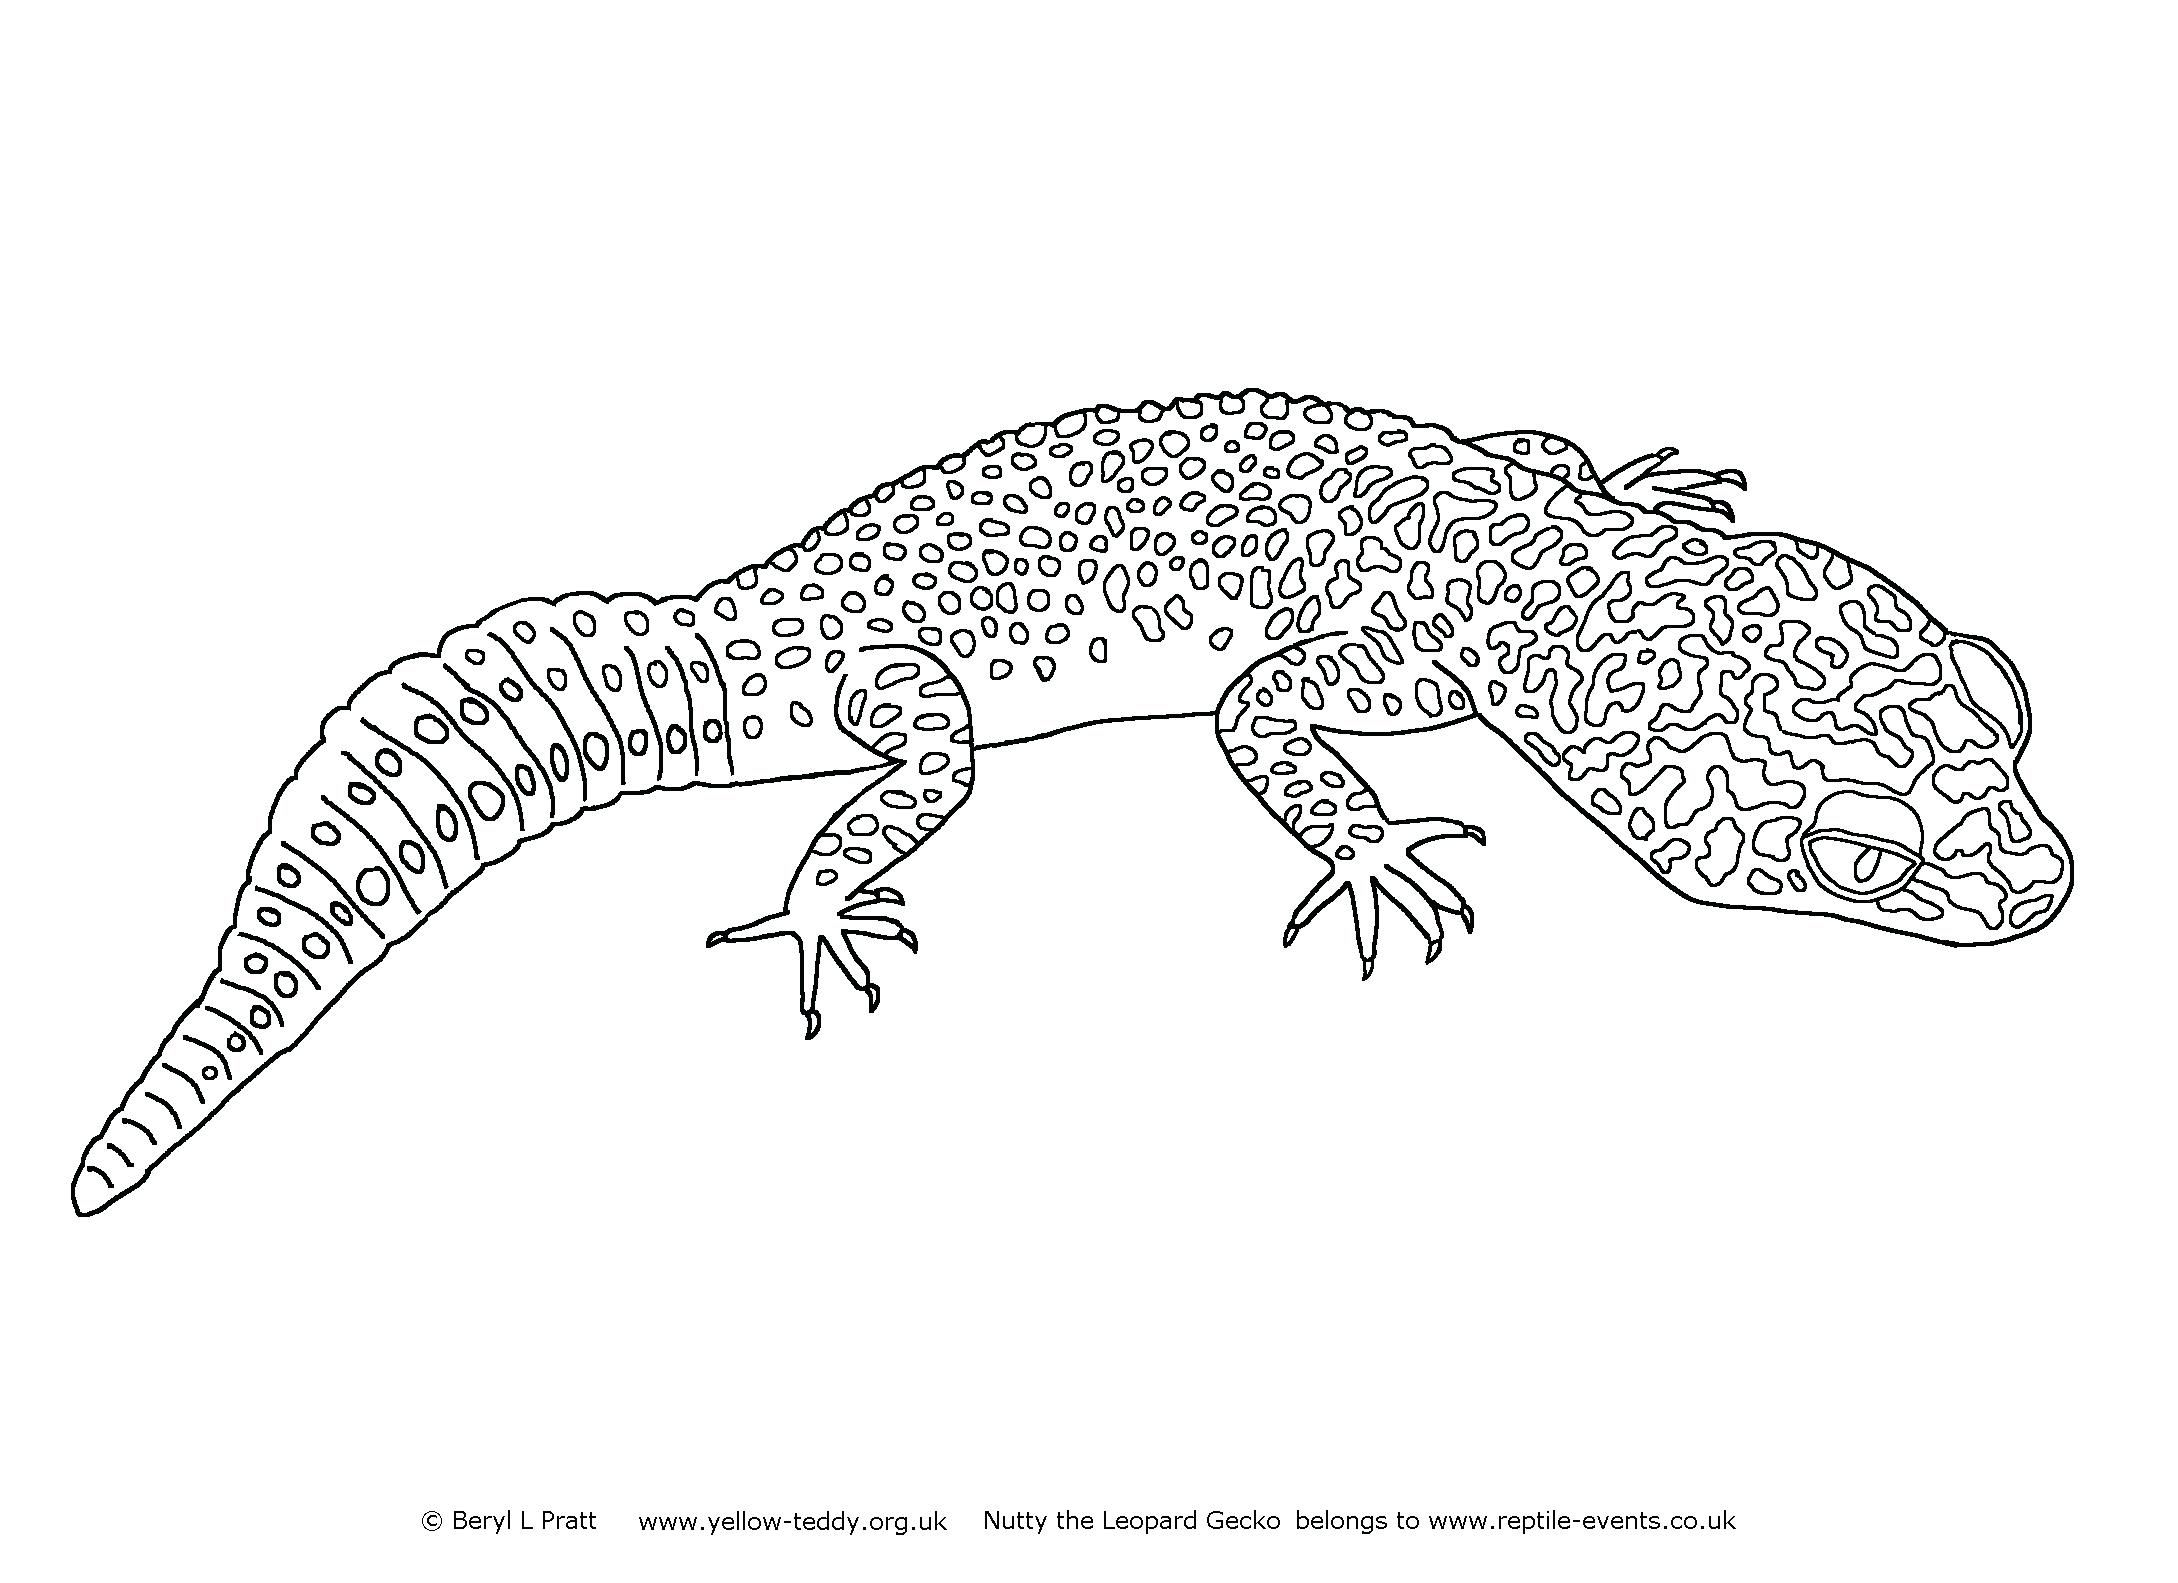 Leopard Gecko Coloring Pages Collection In 2020 Coloring Pages Leopard Gecko Cool Coloring Pages